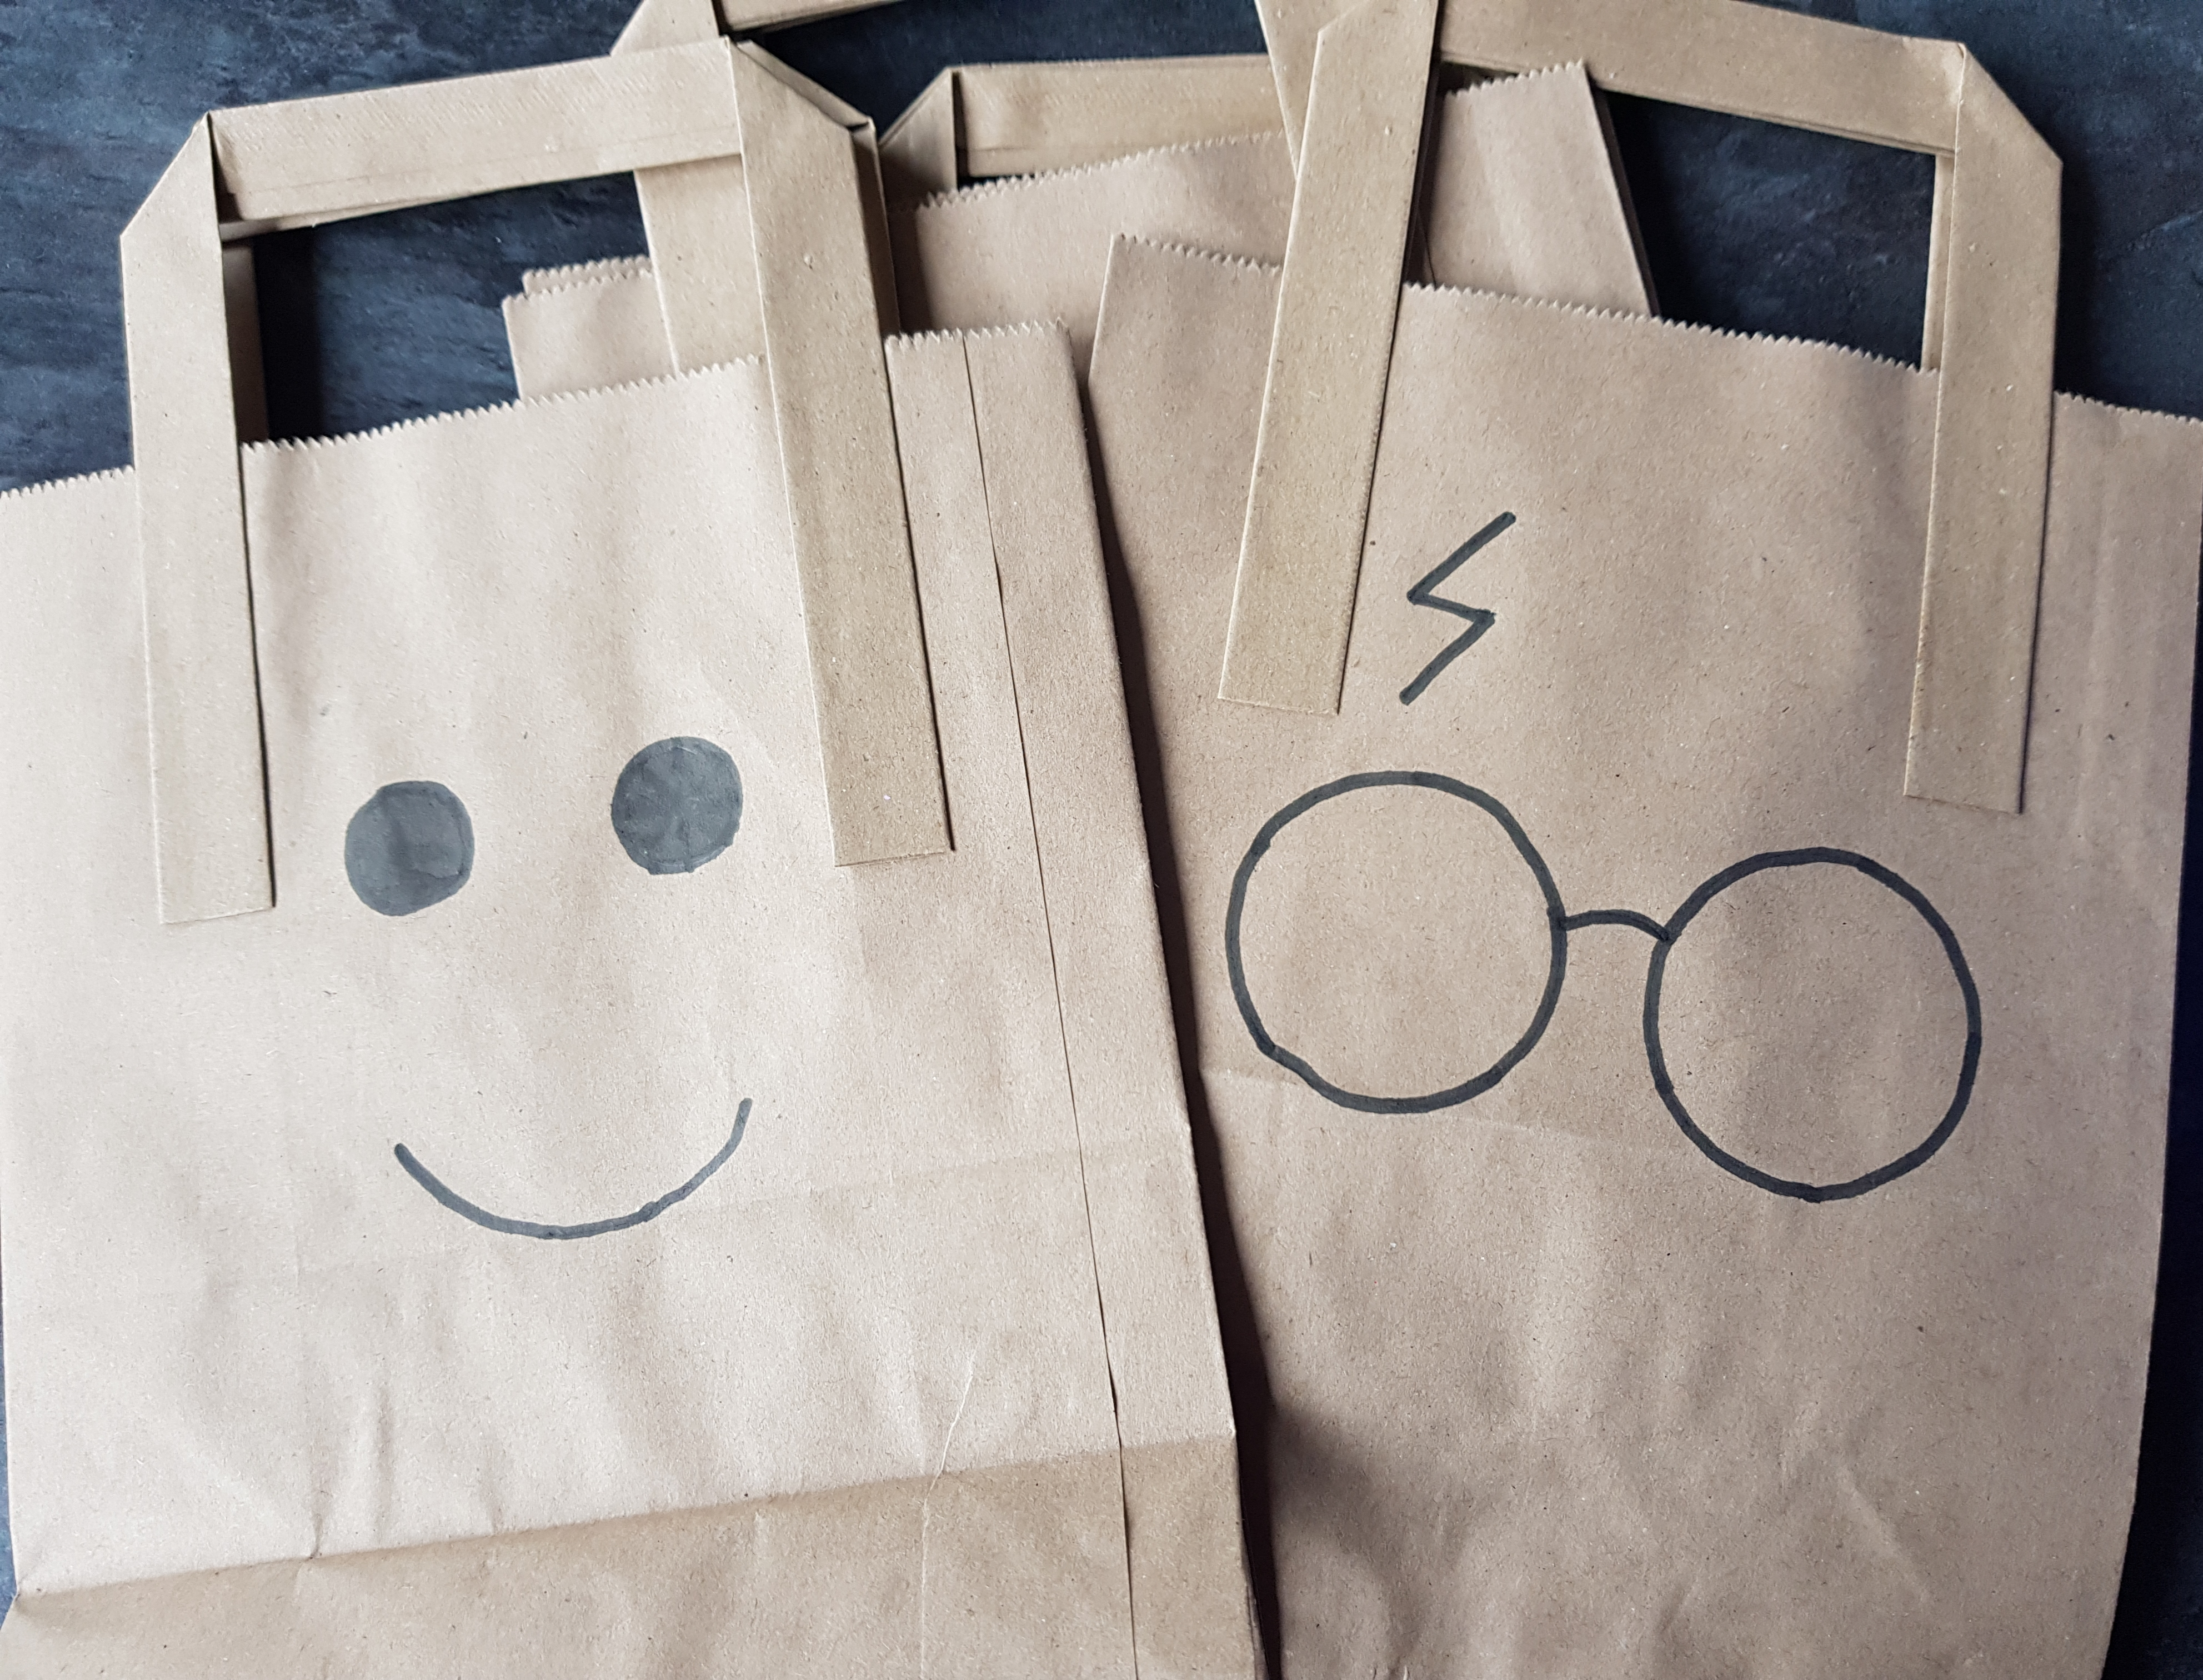 Lego face and Harry Potter glasses and scar party bags